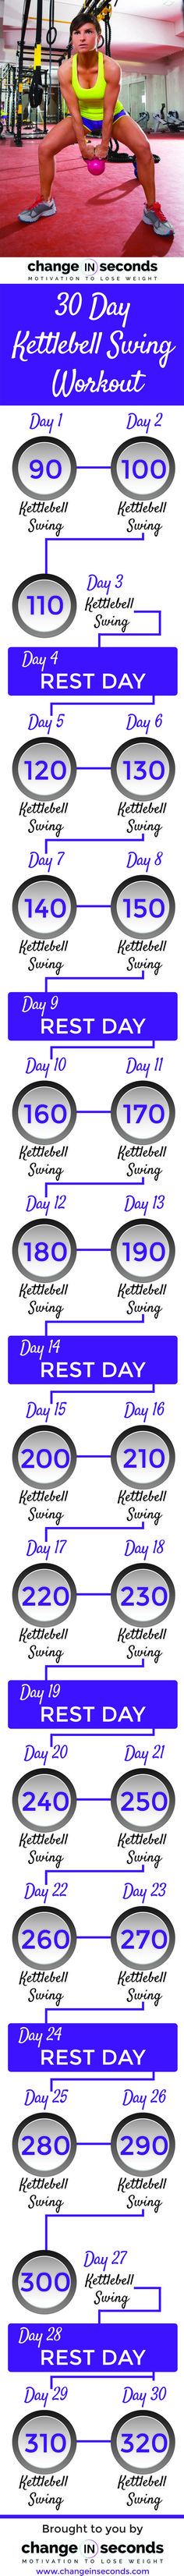 Kettlebell Workout https://www.changeinseconds.com/30-day-kettlebell-swing-workout/